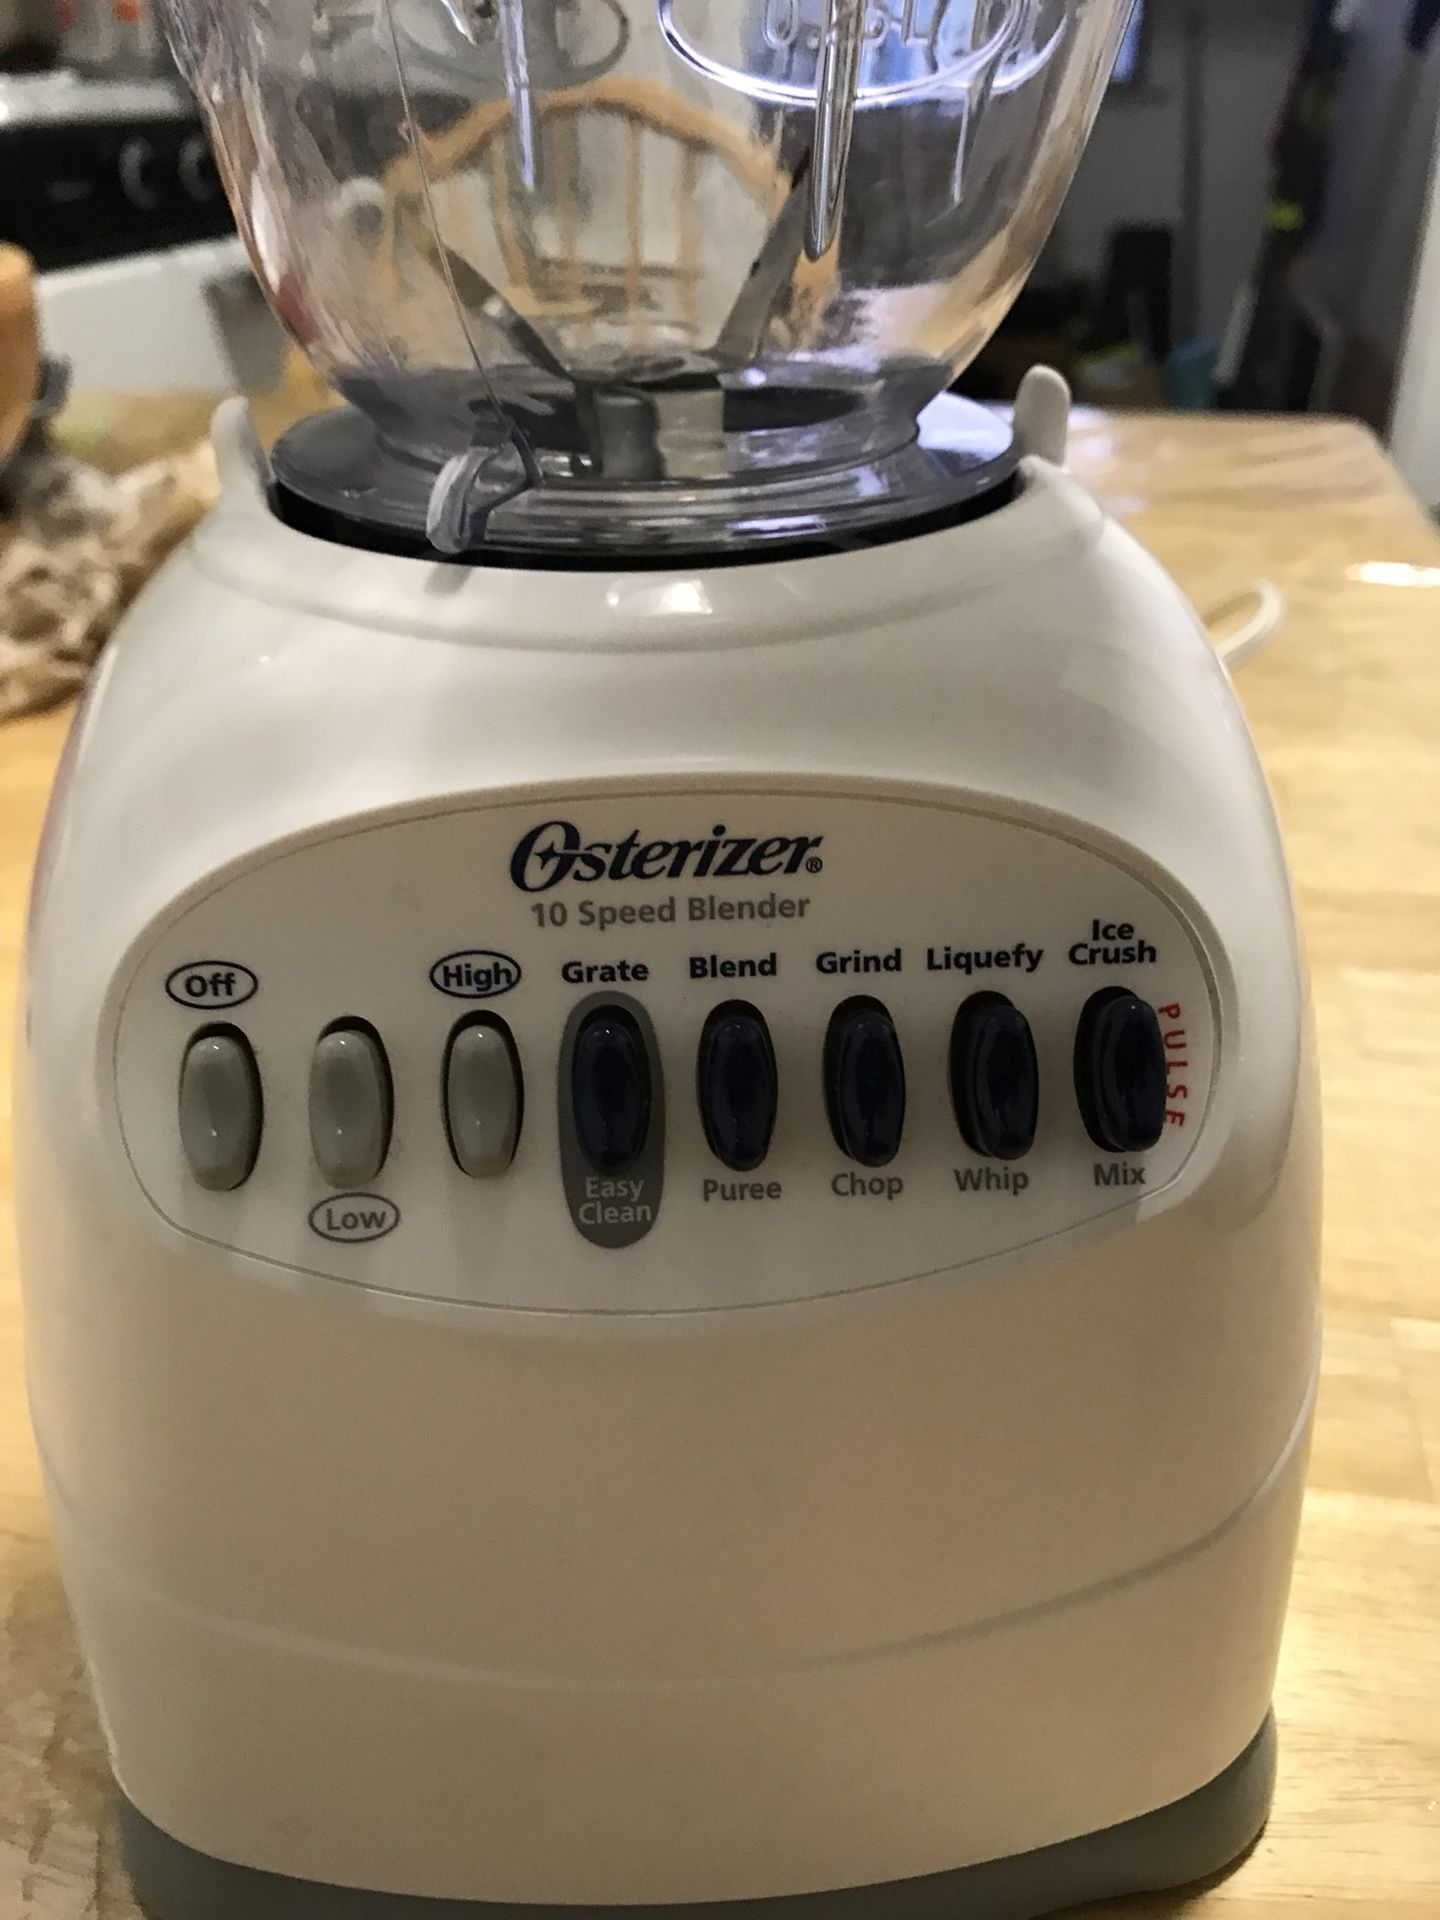 User friendly blender. Easy to use and your smoothie will be ready in a few mins.